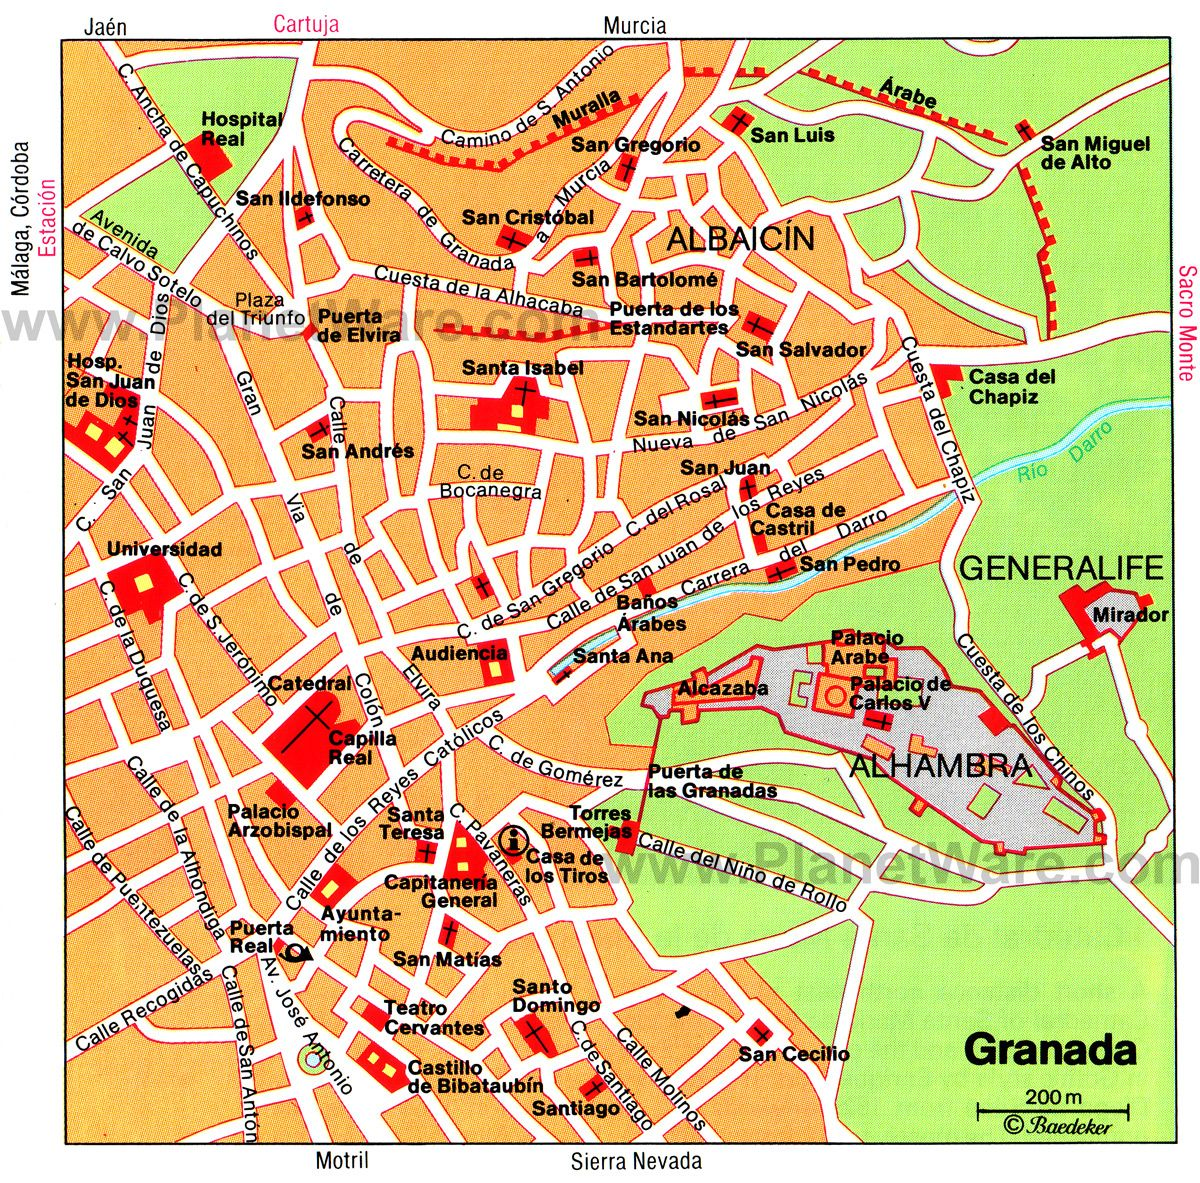 Granada Map - Tourist Attractions | Southern Spain in 2019 ... on map of maspalomas spain, map of porto spain, map of torrejon spain, map of la manga spain, map of spain major cities, map of santander spain, map of toledo spain, map of irun spain, map of rioja region spain, map of ciudad real spain, map of palamos spain, map of santillana spain, map of priorat spain, map of gava spain, map of ribera del duero spain, map of cadiz spain, map of nerja spain, map of sanlucar spain, large map of spain, map of spain with regions,